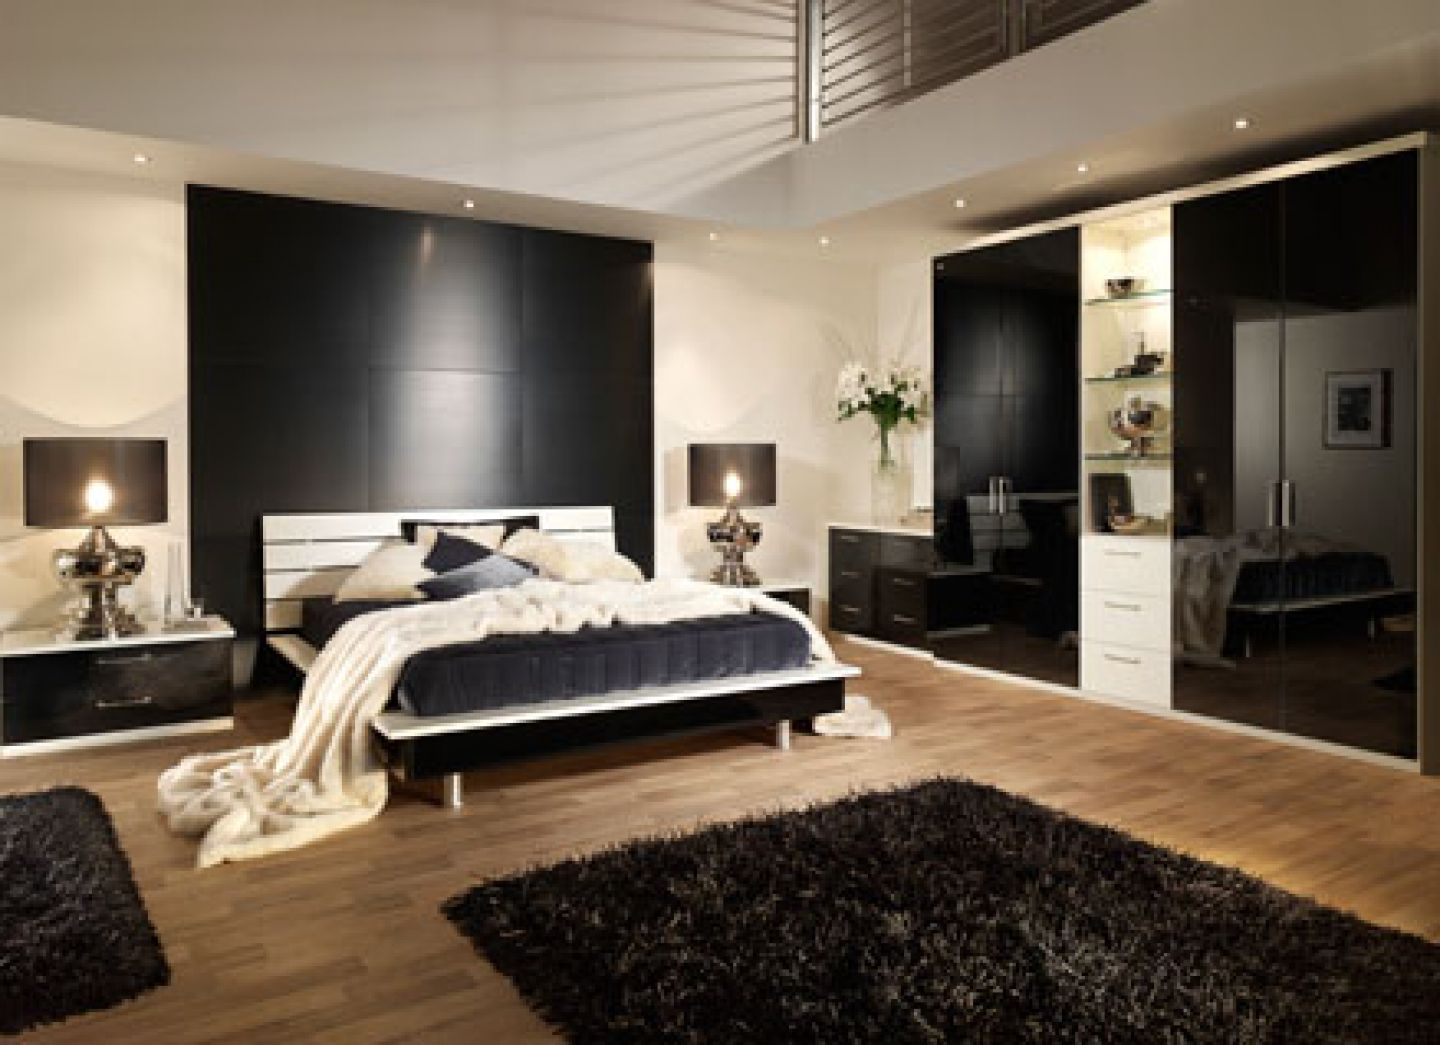 Bedroom Design : Modern Bedroom Inspiration Home Improvement Blog Design  Ideas ~ glubdubs